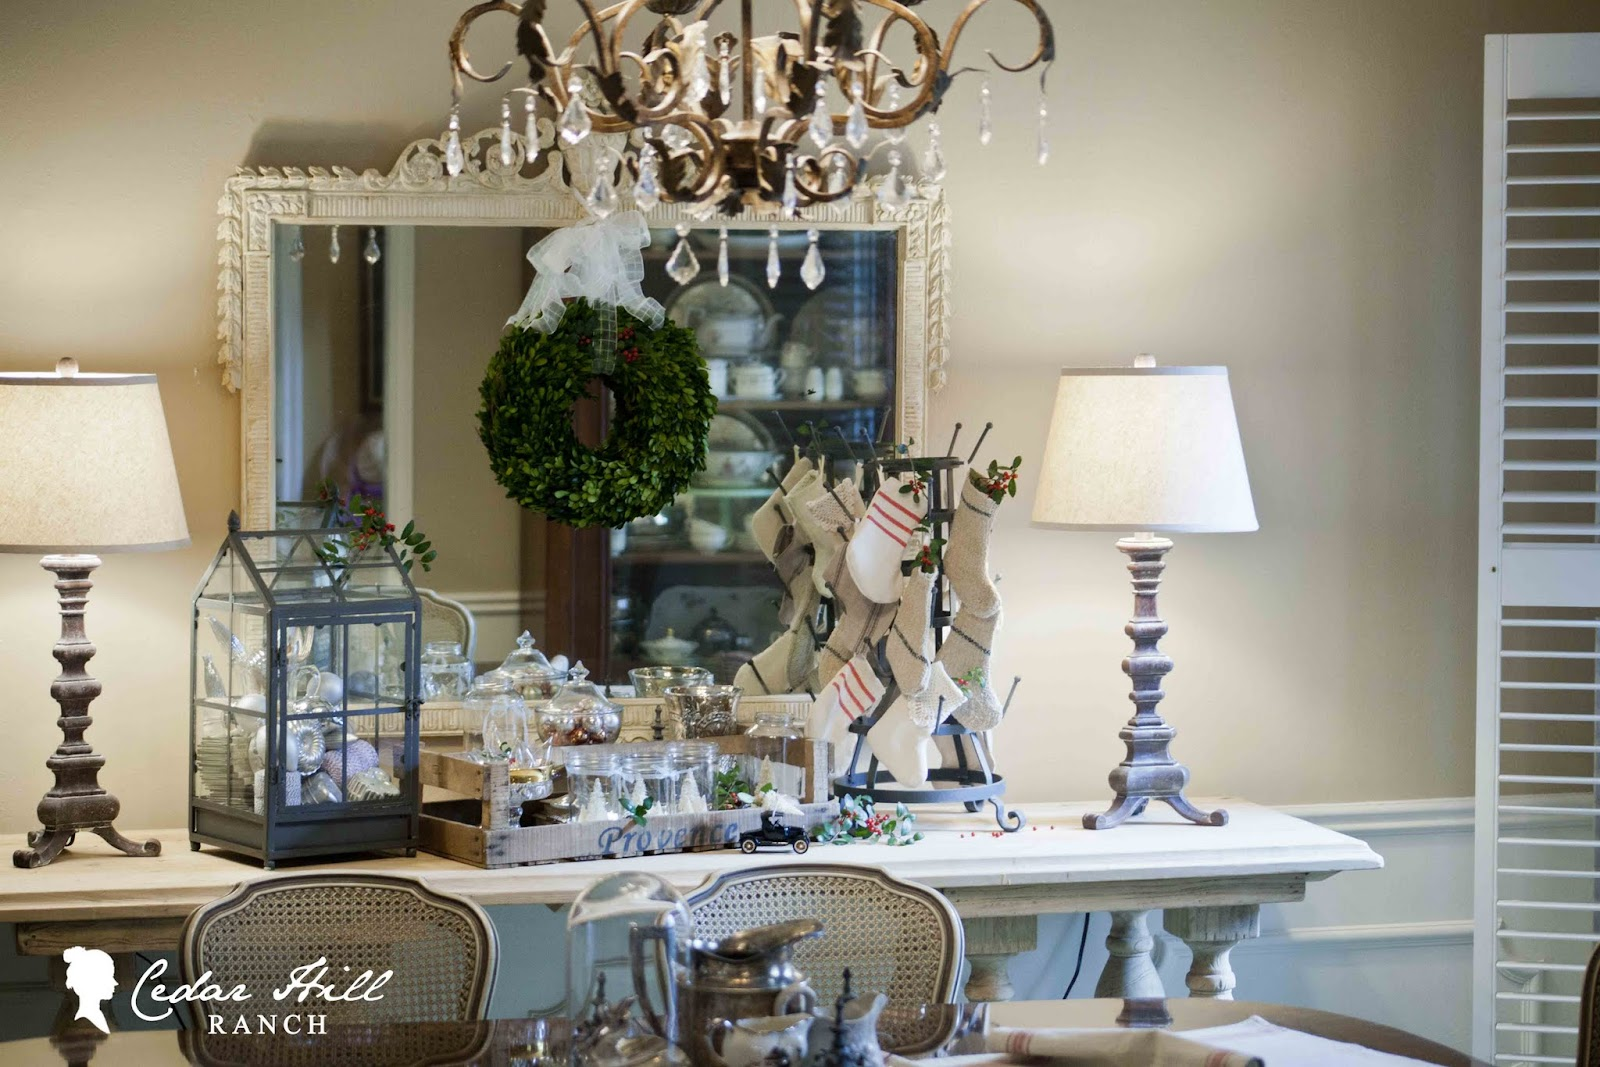 Cedar Hill Ranch: Happy Holidays in the Dining Room